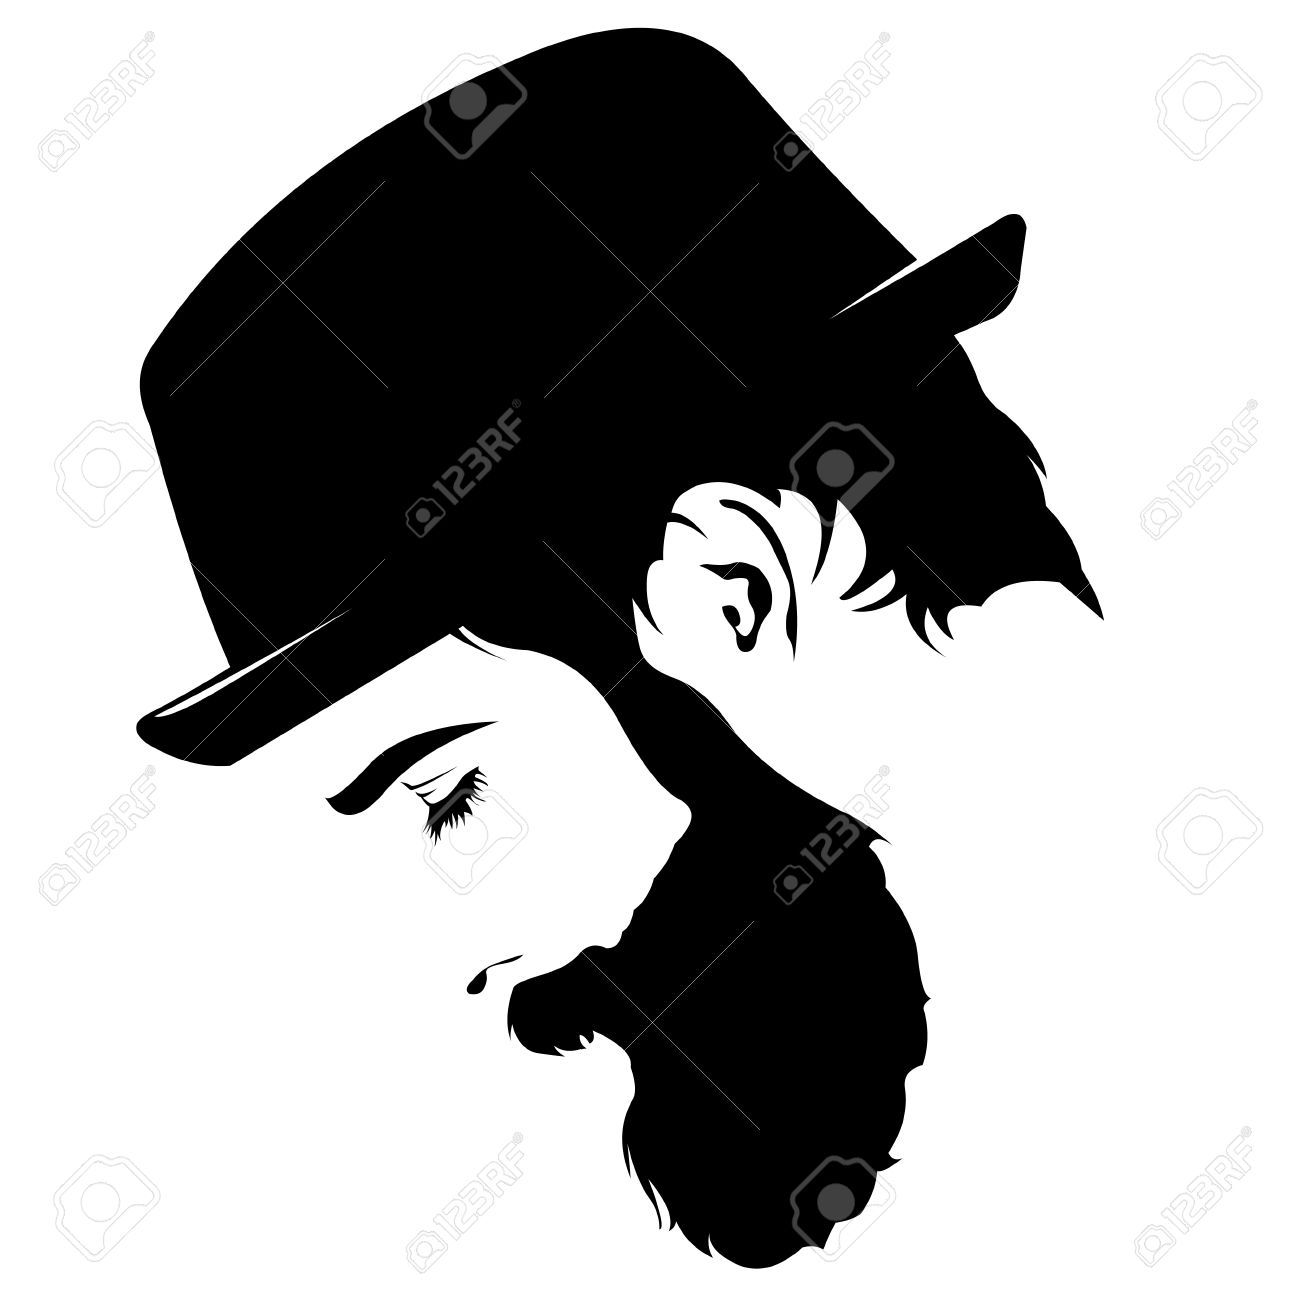 Stock Vector in 2019.